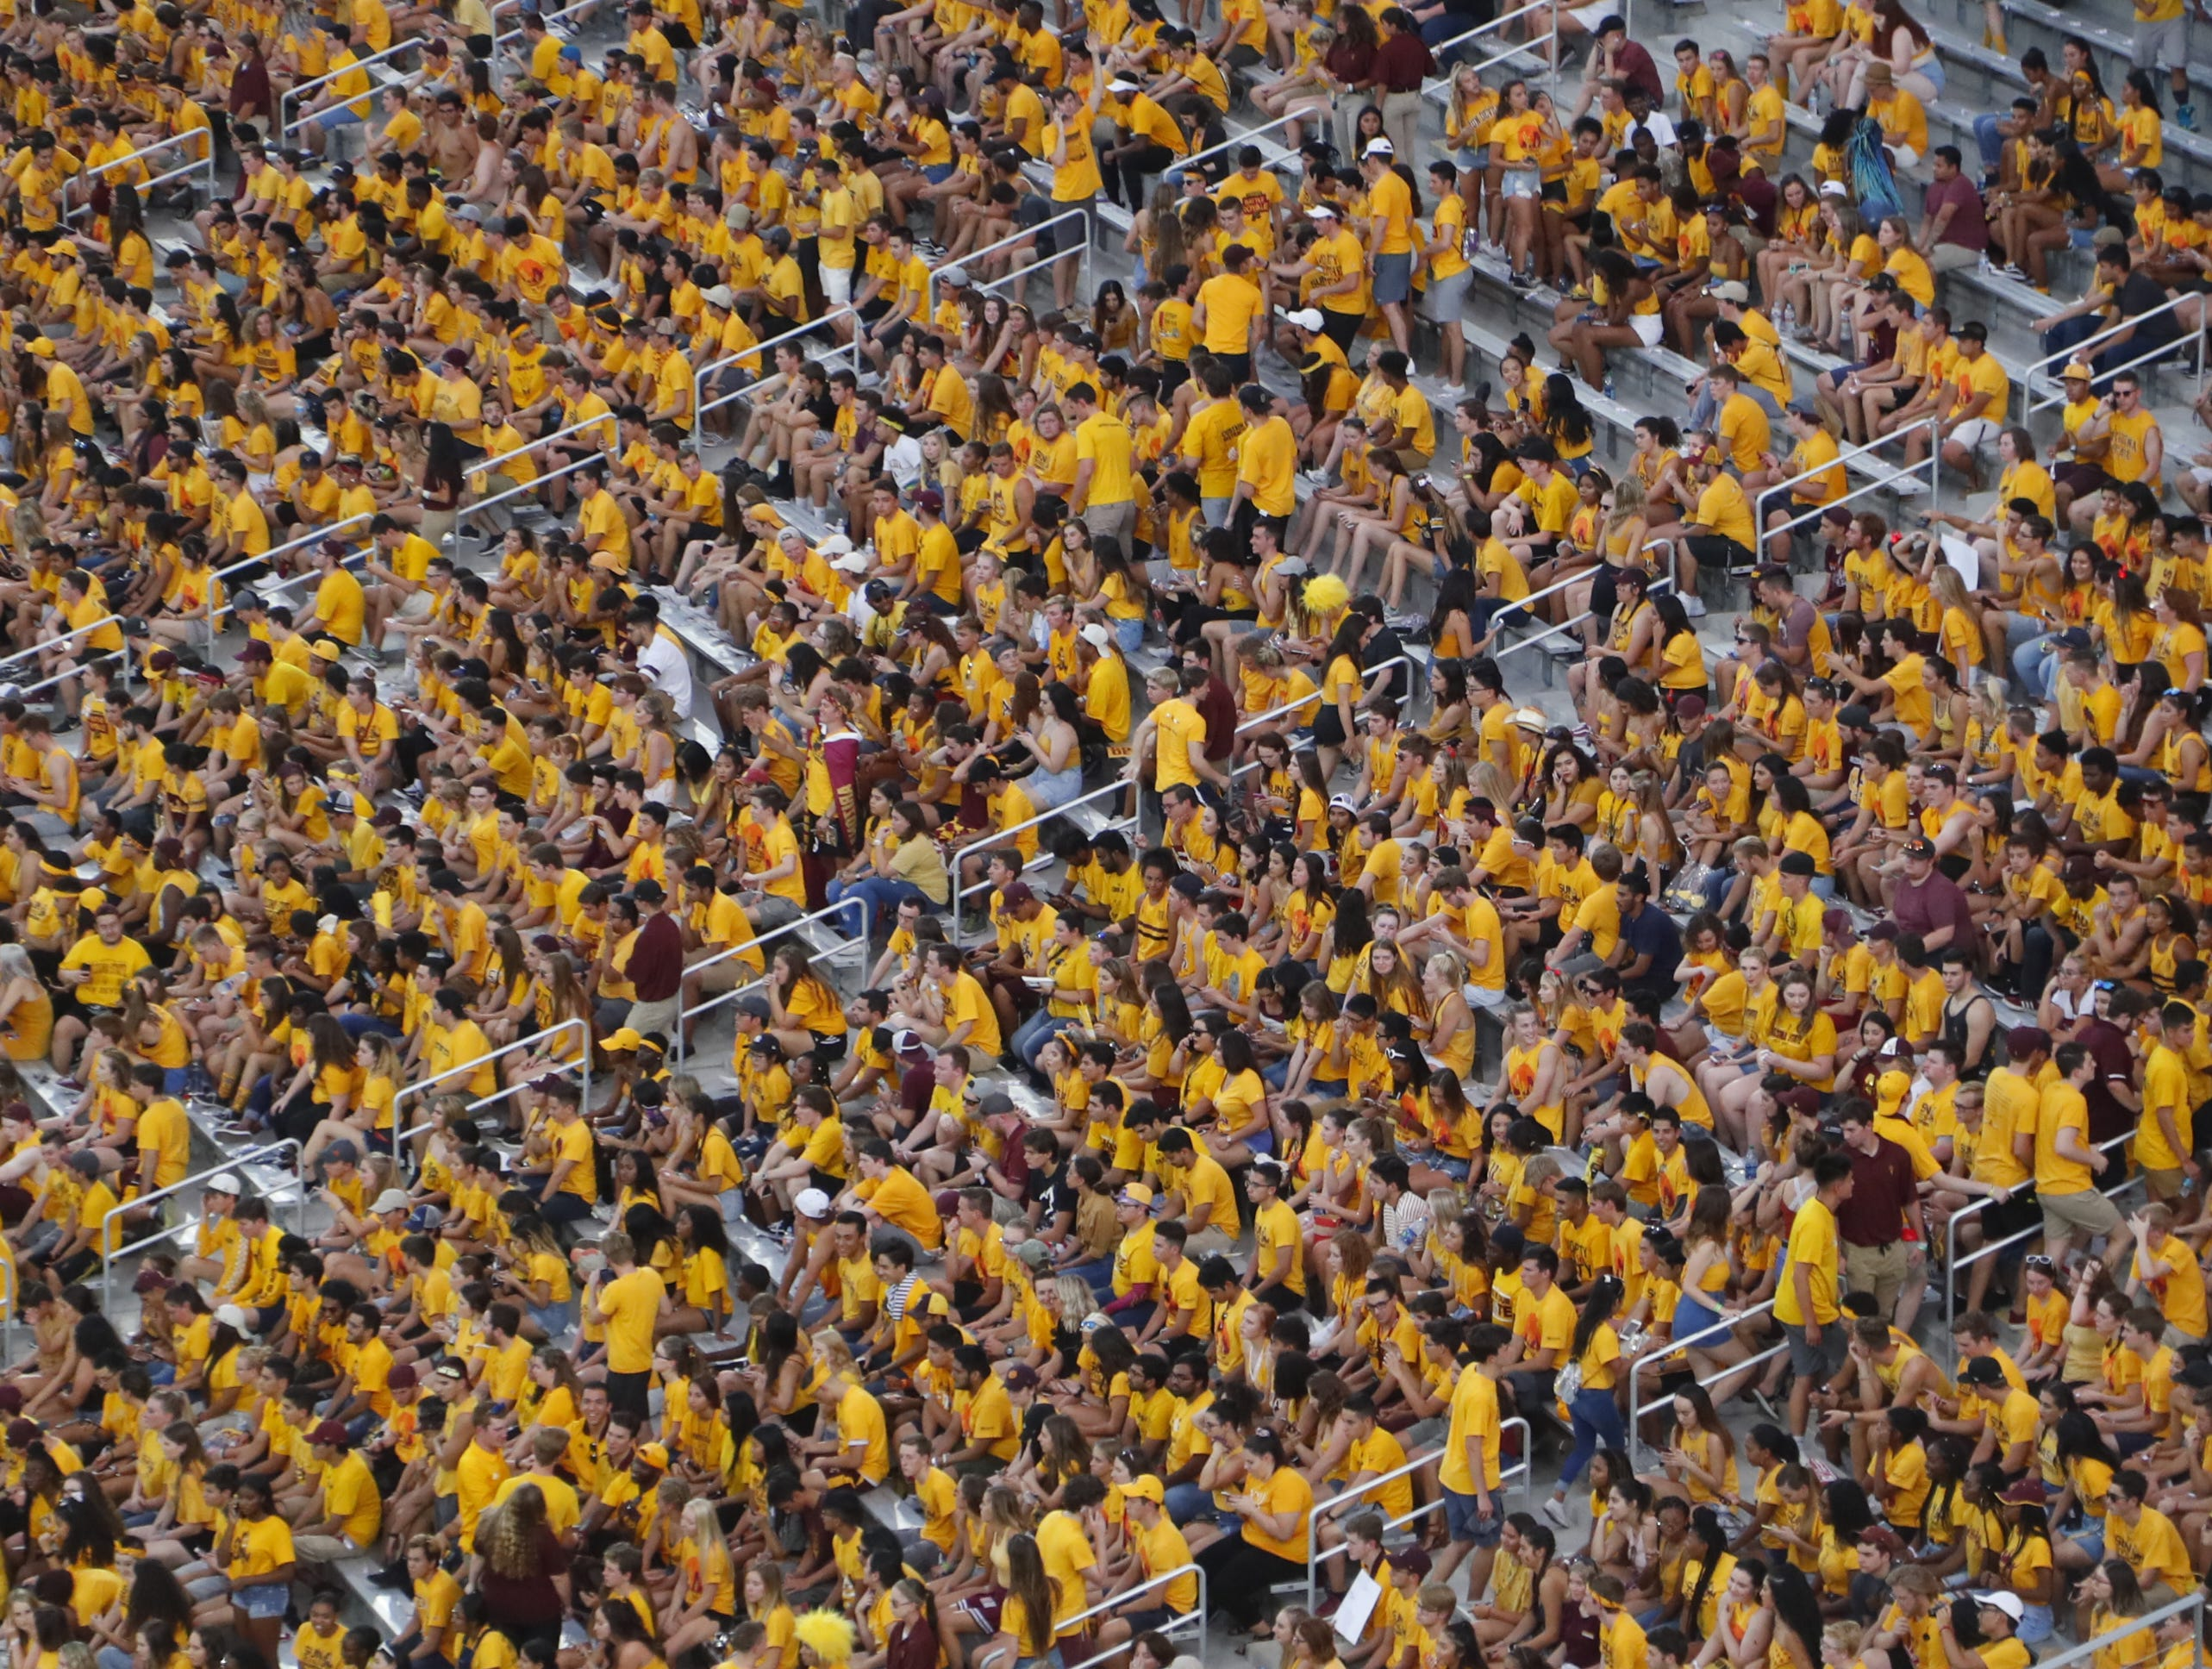 Fans enter the student section at Sun Devil Stadium before a game against UTSA in Tempe, Ariz. on Sept. 1, 2018.